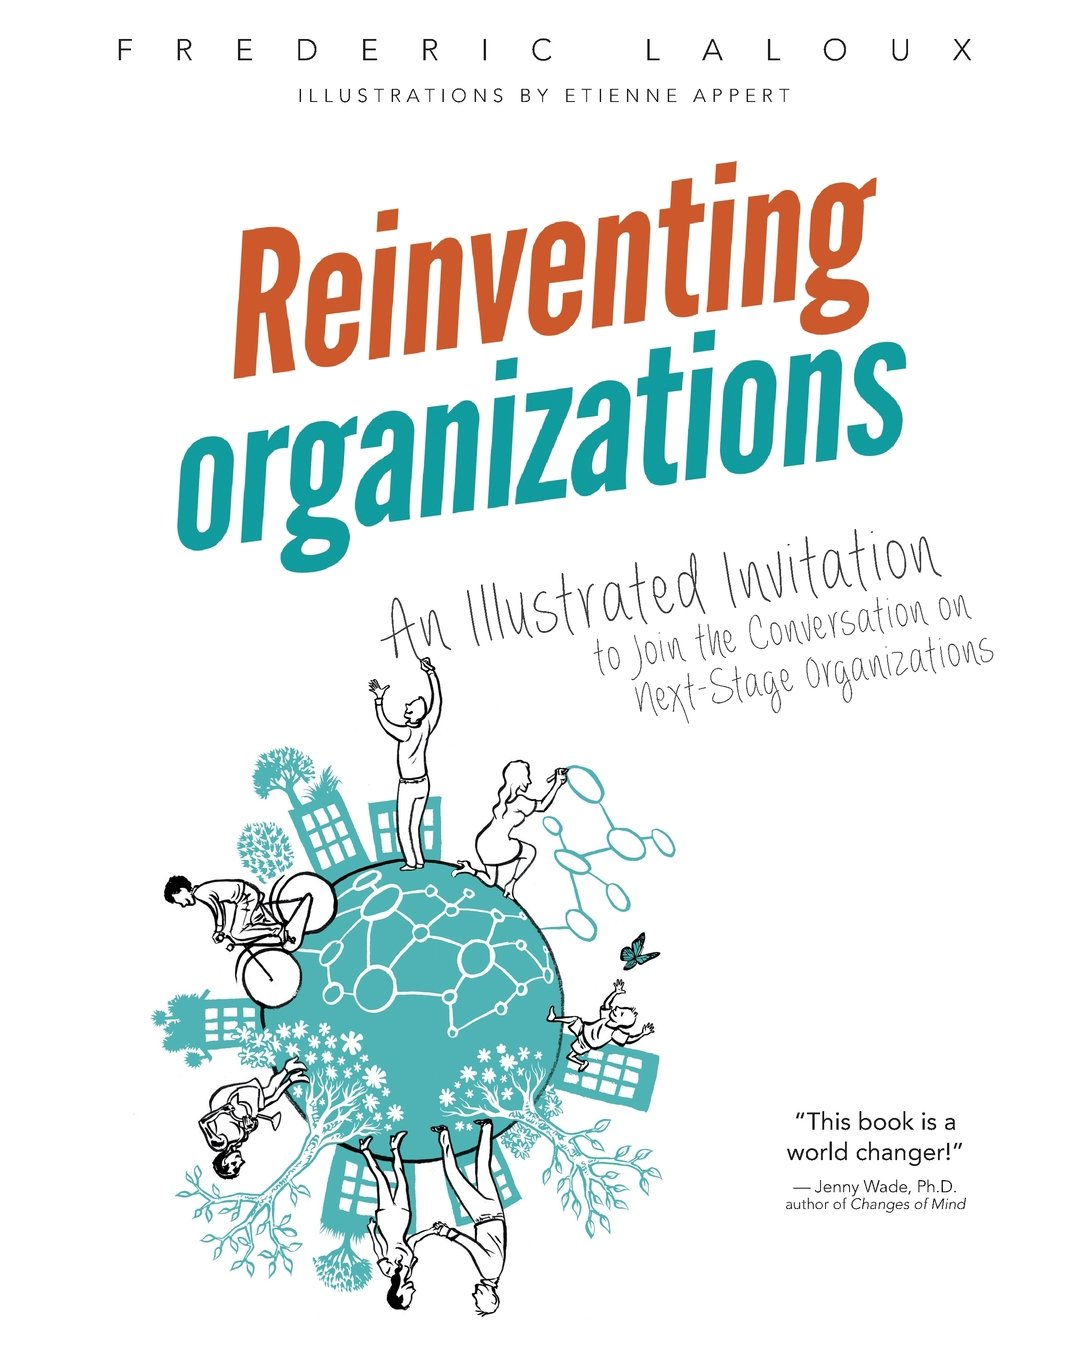 Reinventing organizations an illustrated invitation to join the reinventing organizations an illustrated invitation to join the conversation on next stage organizations frederic laloux etienne appert 9782960133554 stopboris Choice Image